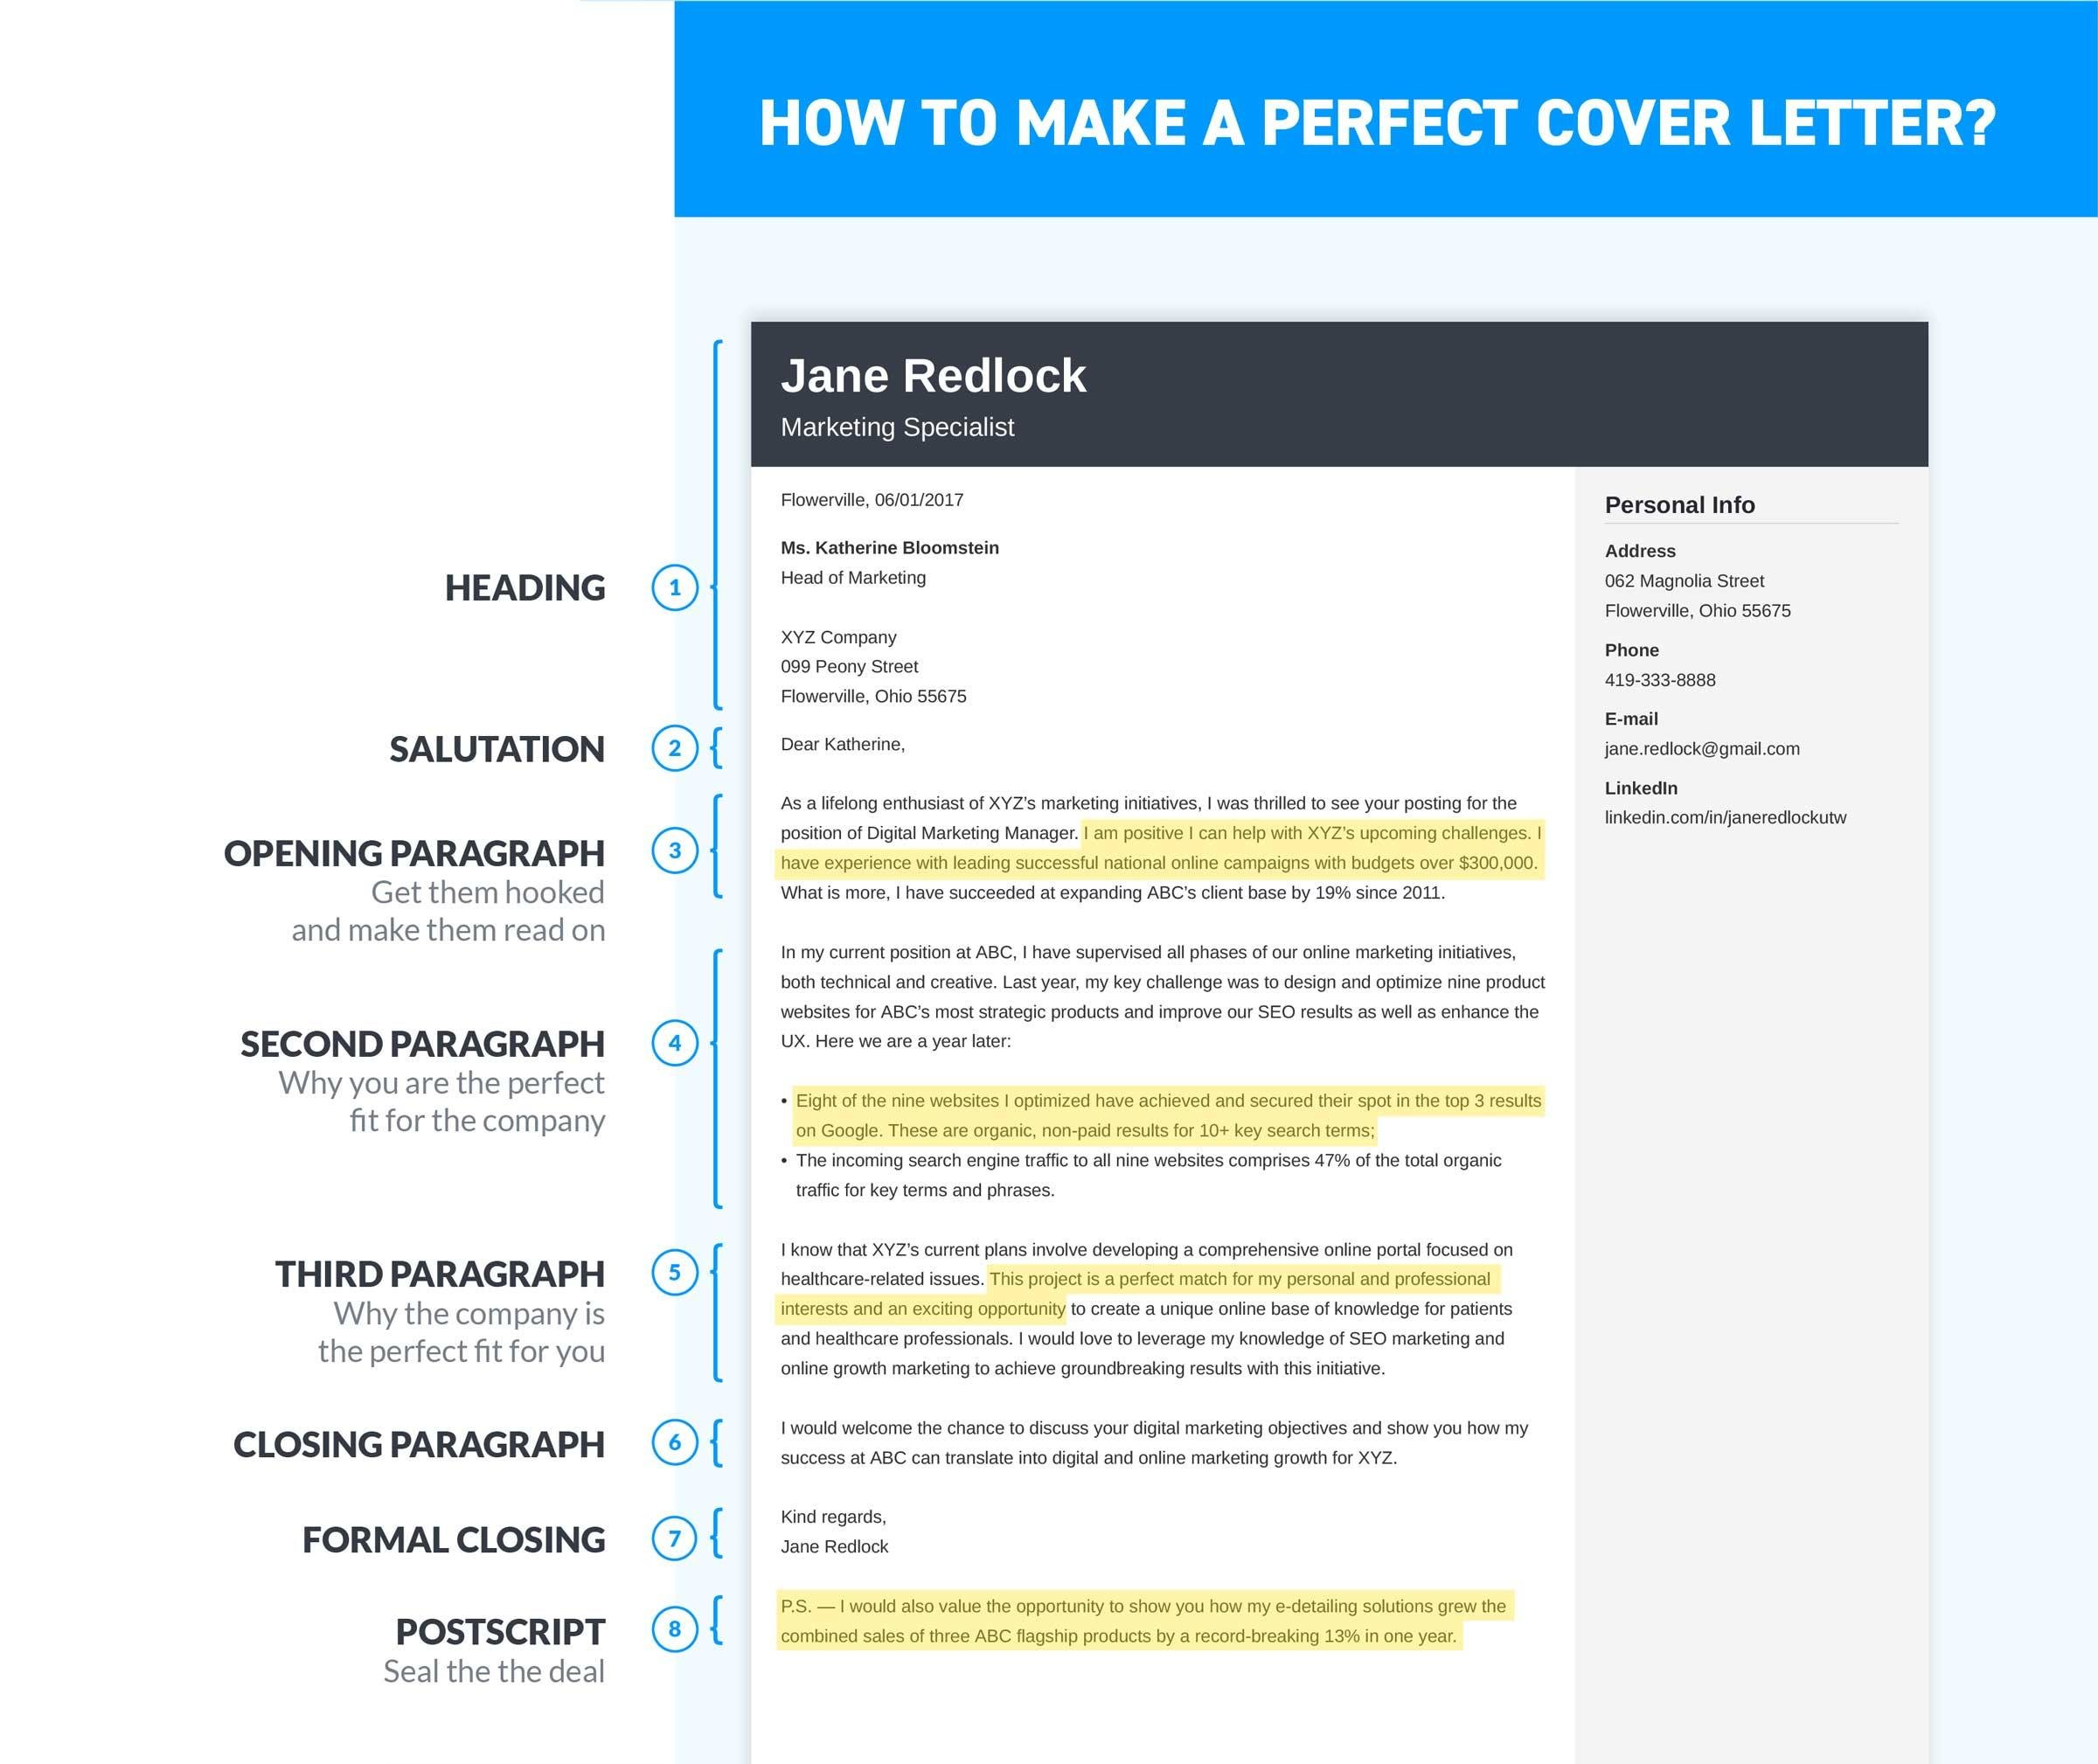 How to make a perfect cover letter infographic